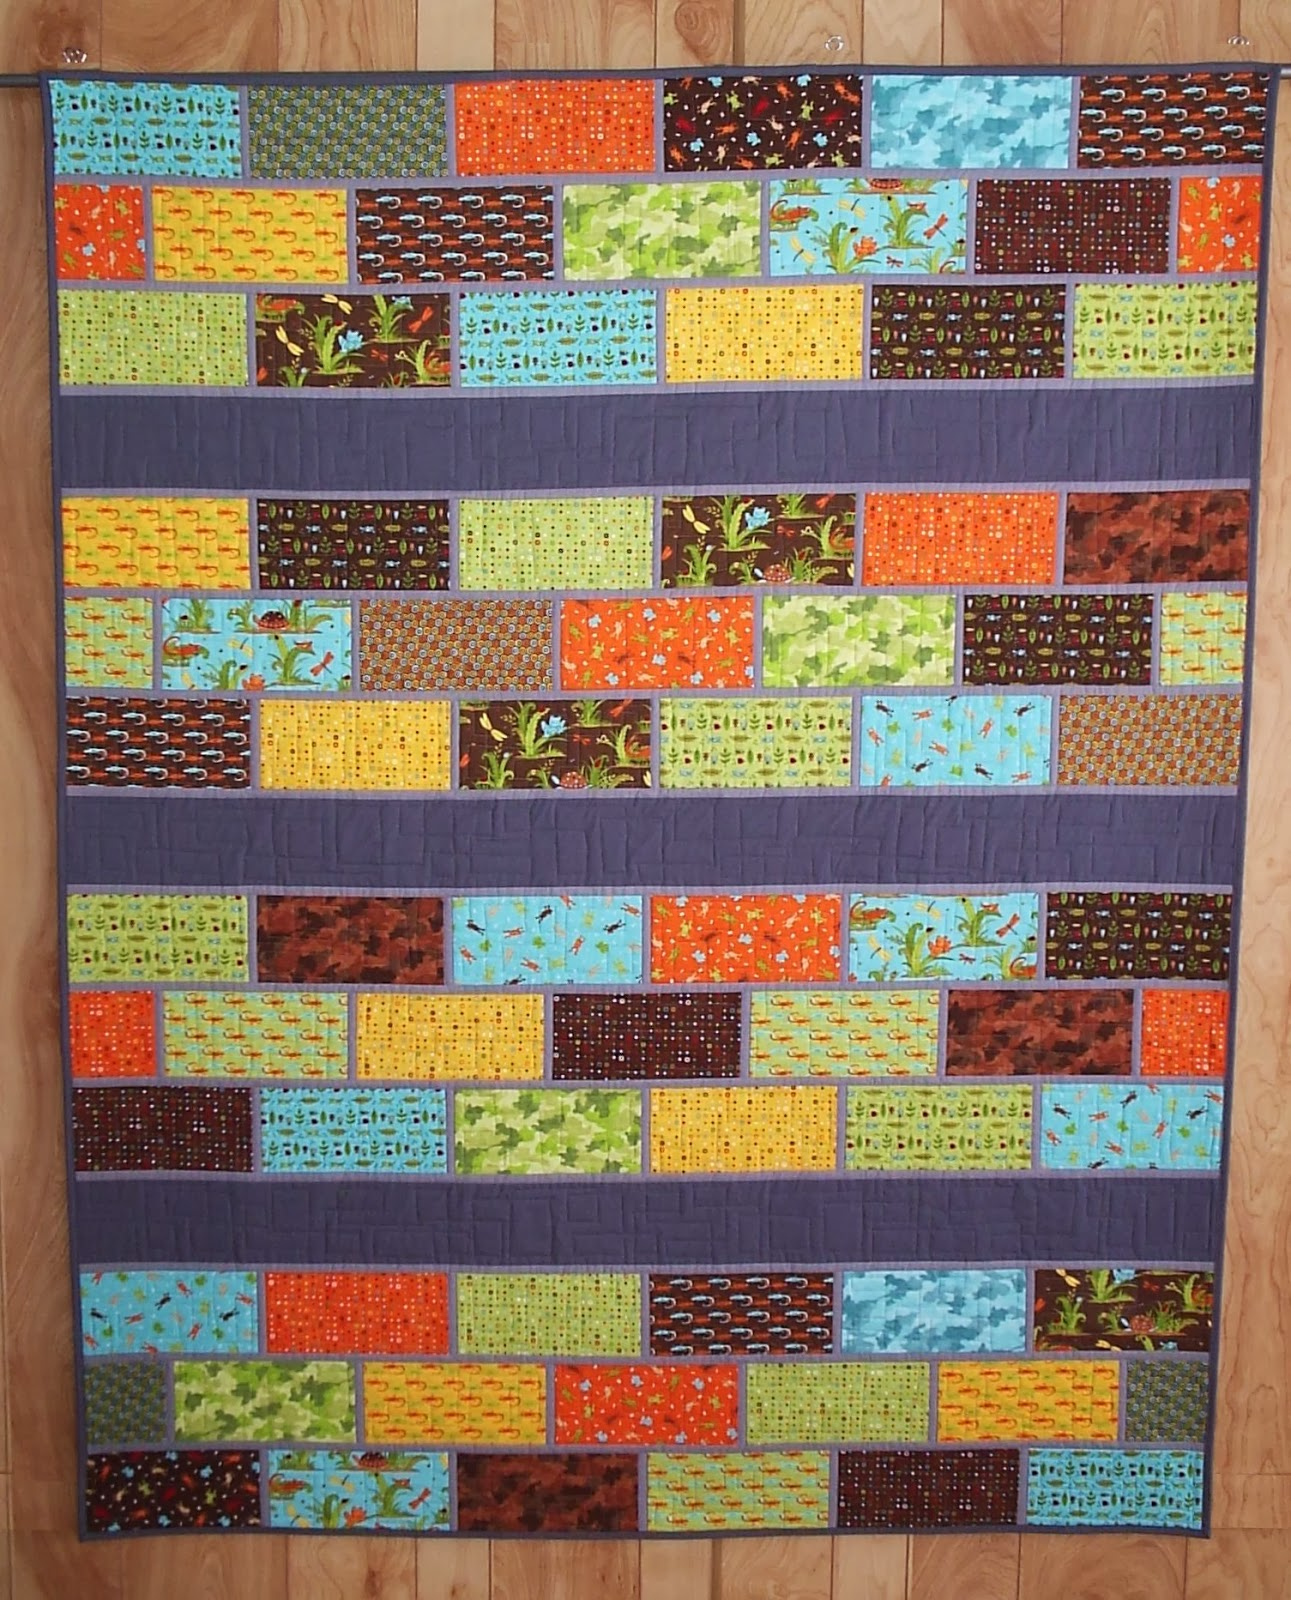 http://sewfreshquilts.blogspot.ca/2013/12/layer-cake-quilt-pattern_19.html